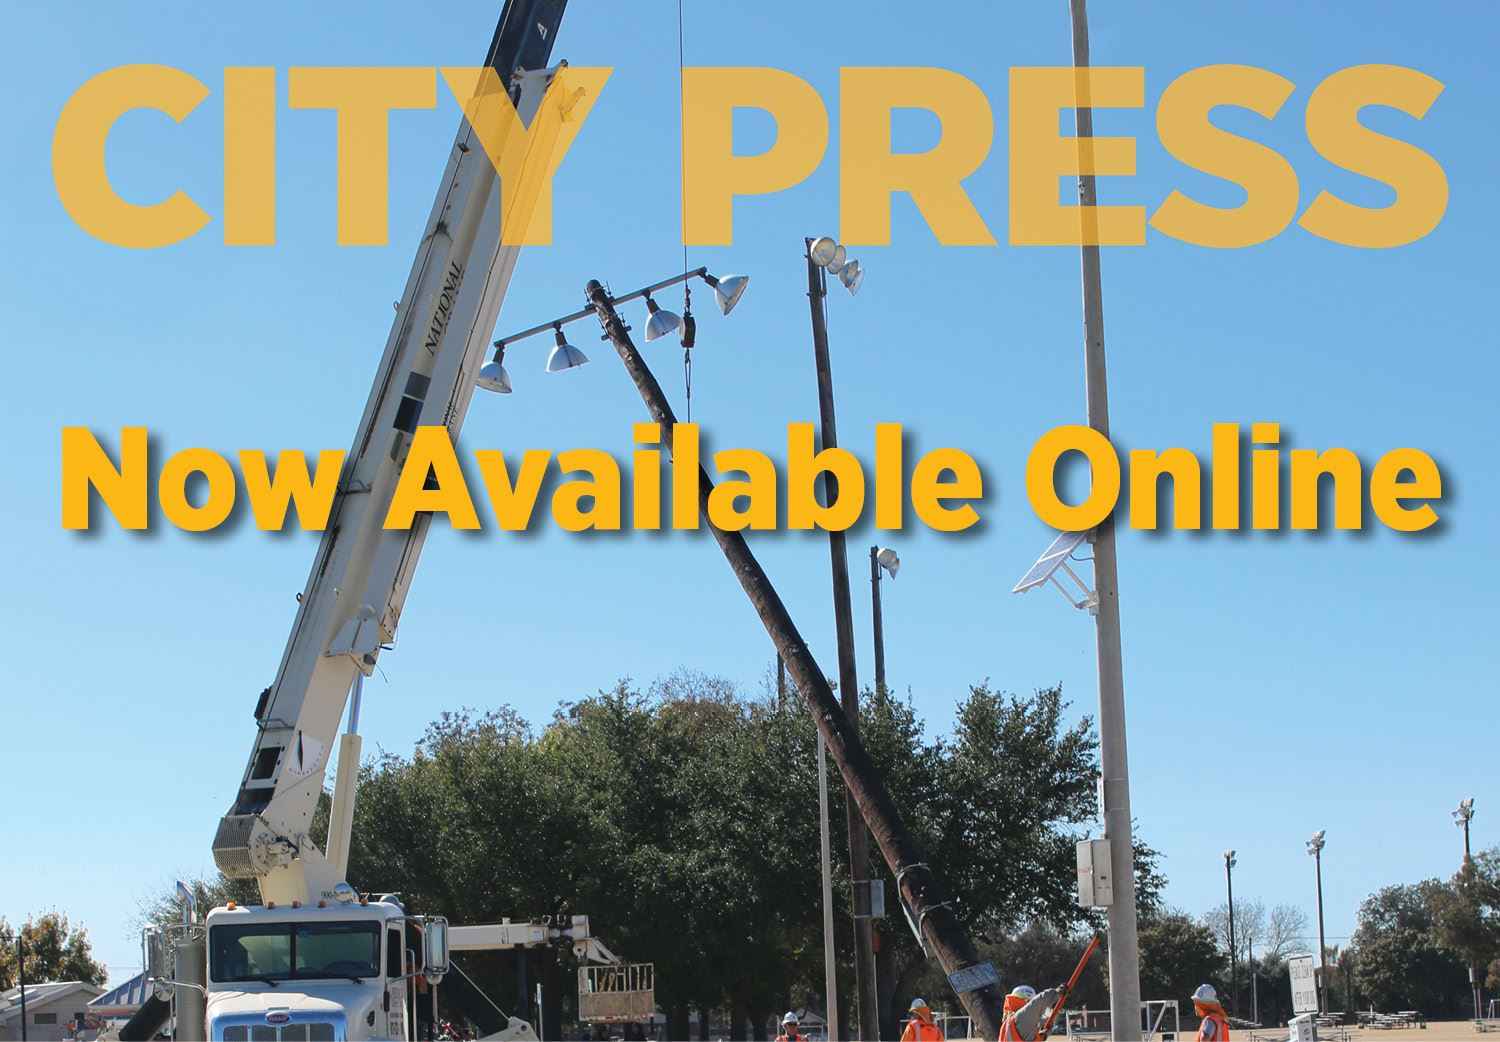 GarlandCityPress_2020January_Now Online_360x250